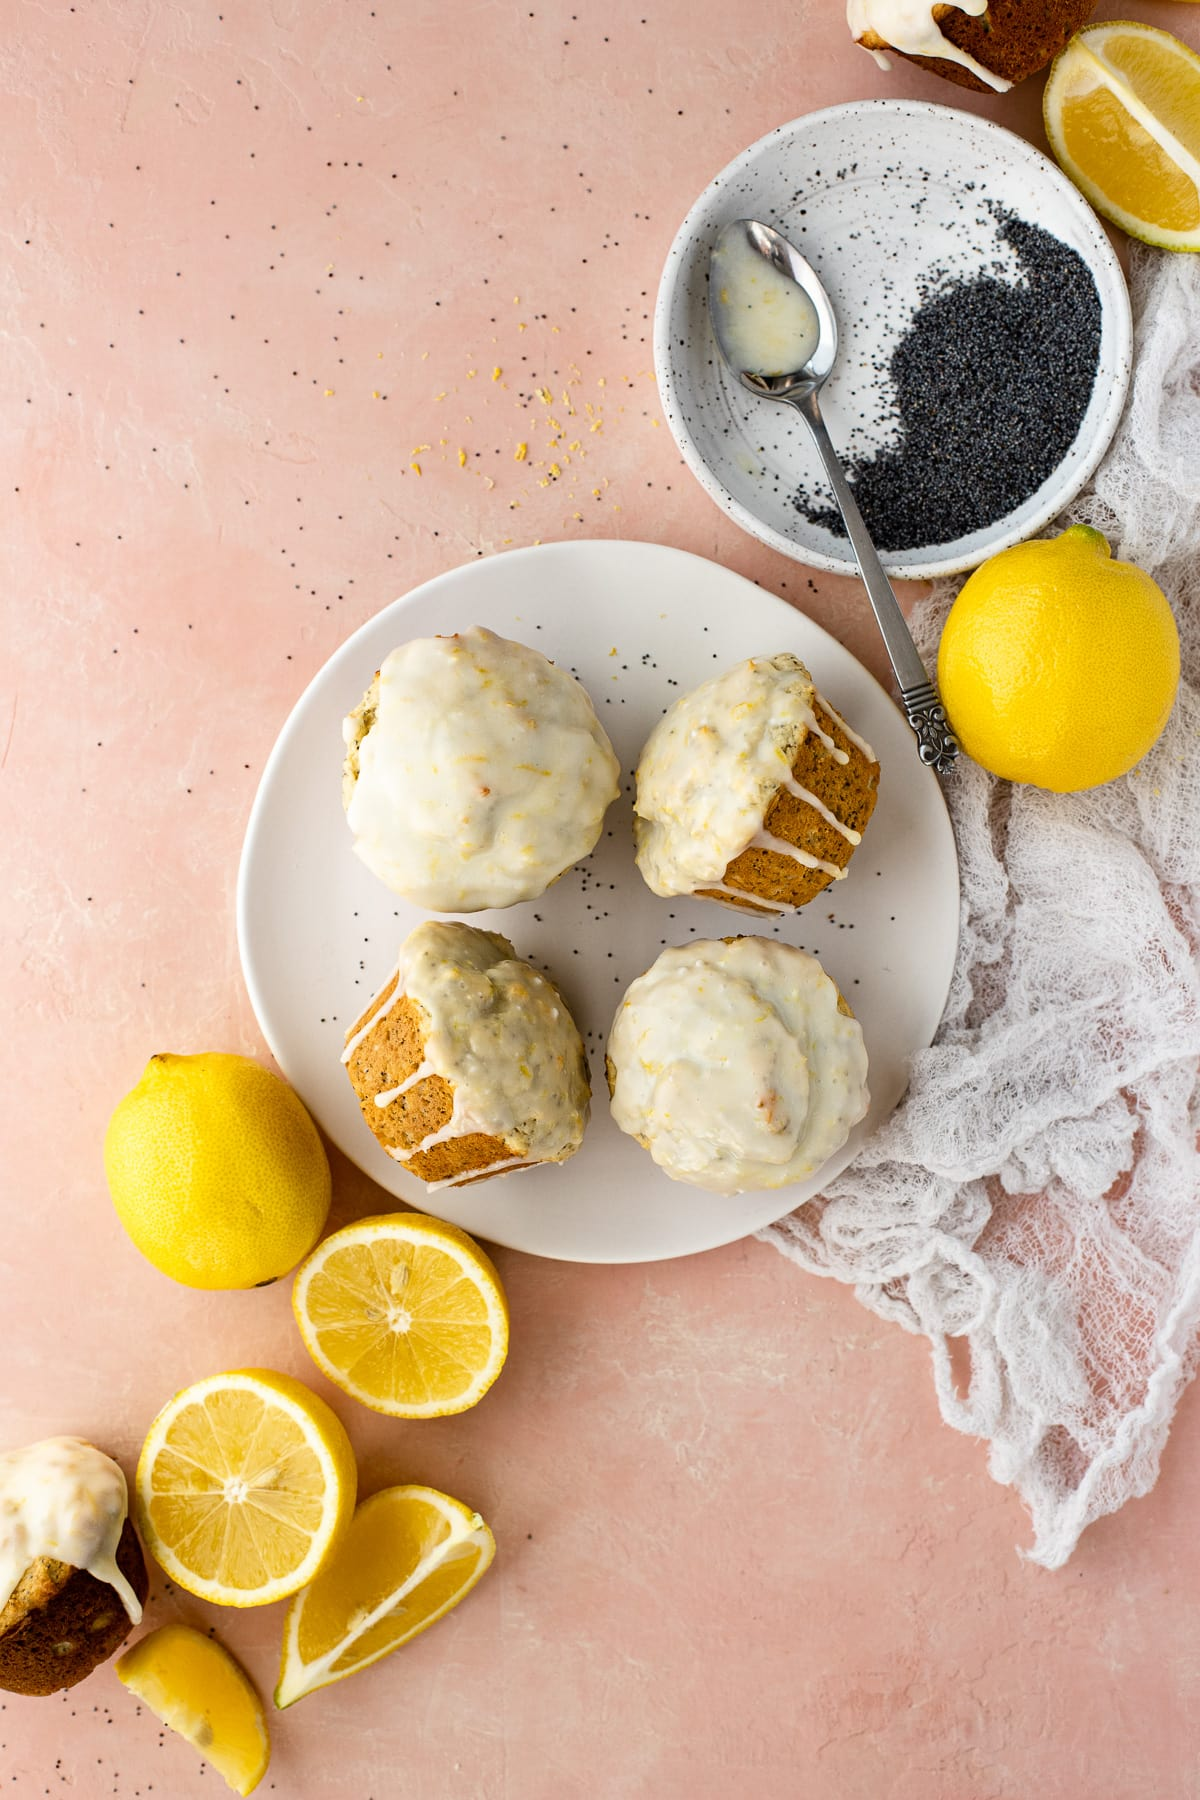 Overhead view of four muffins on a plate, surrounded by fresh lemons and poppy seeds.